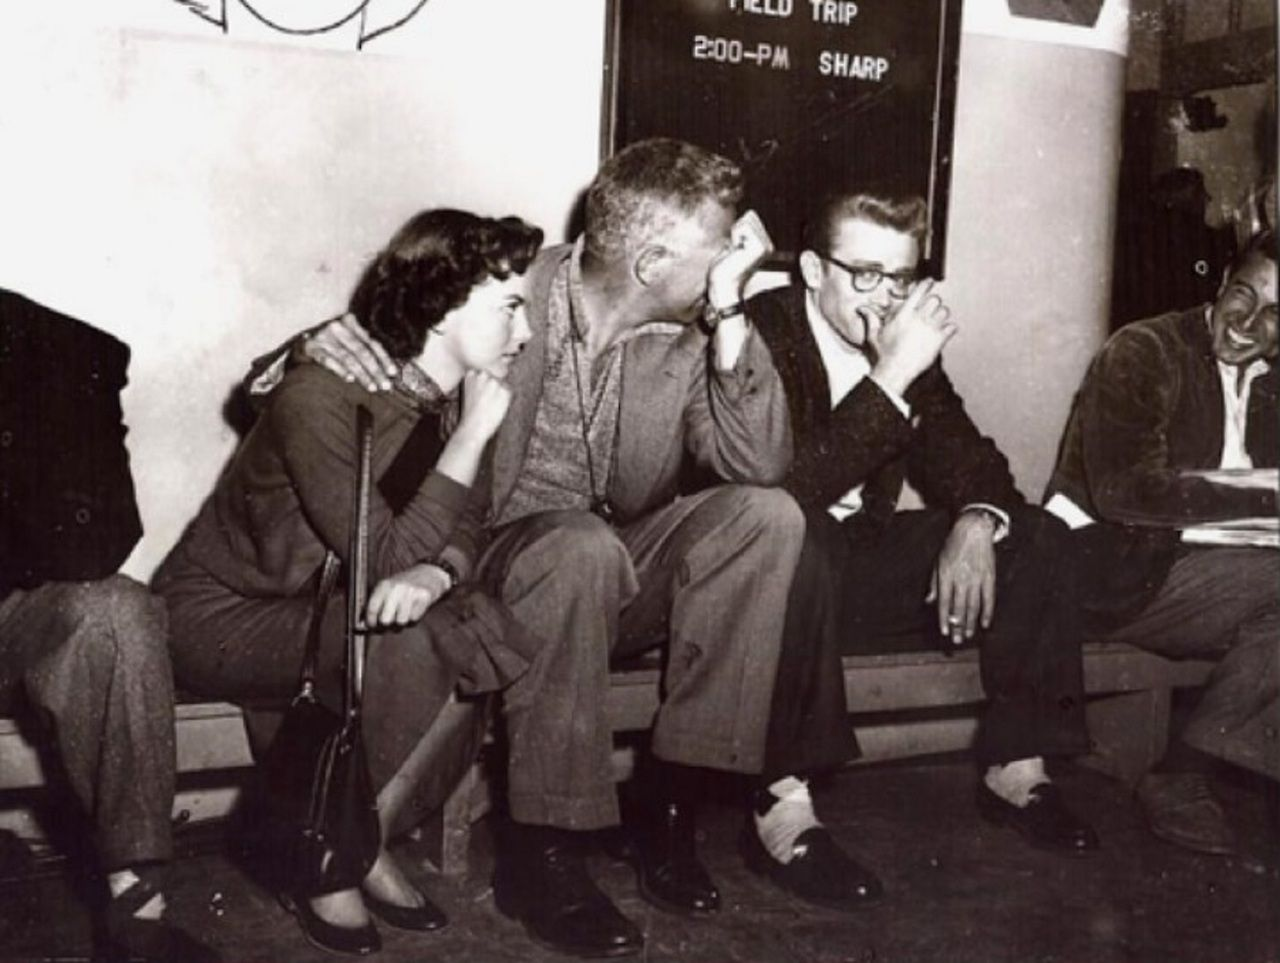 james dean natalie wood and nicholas ray on the set of rebel james dean natalie wood and nicholas ray on the set of rebel out a cause